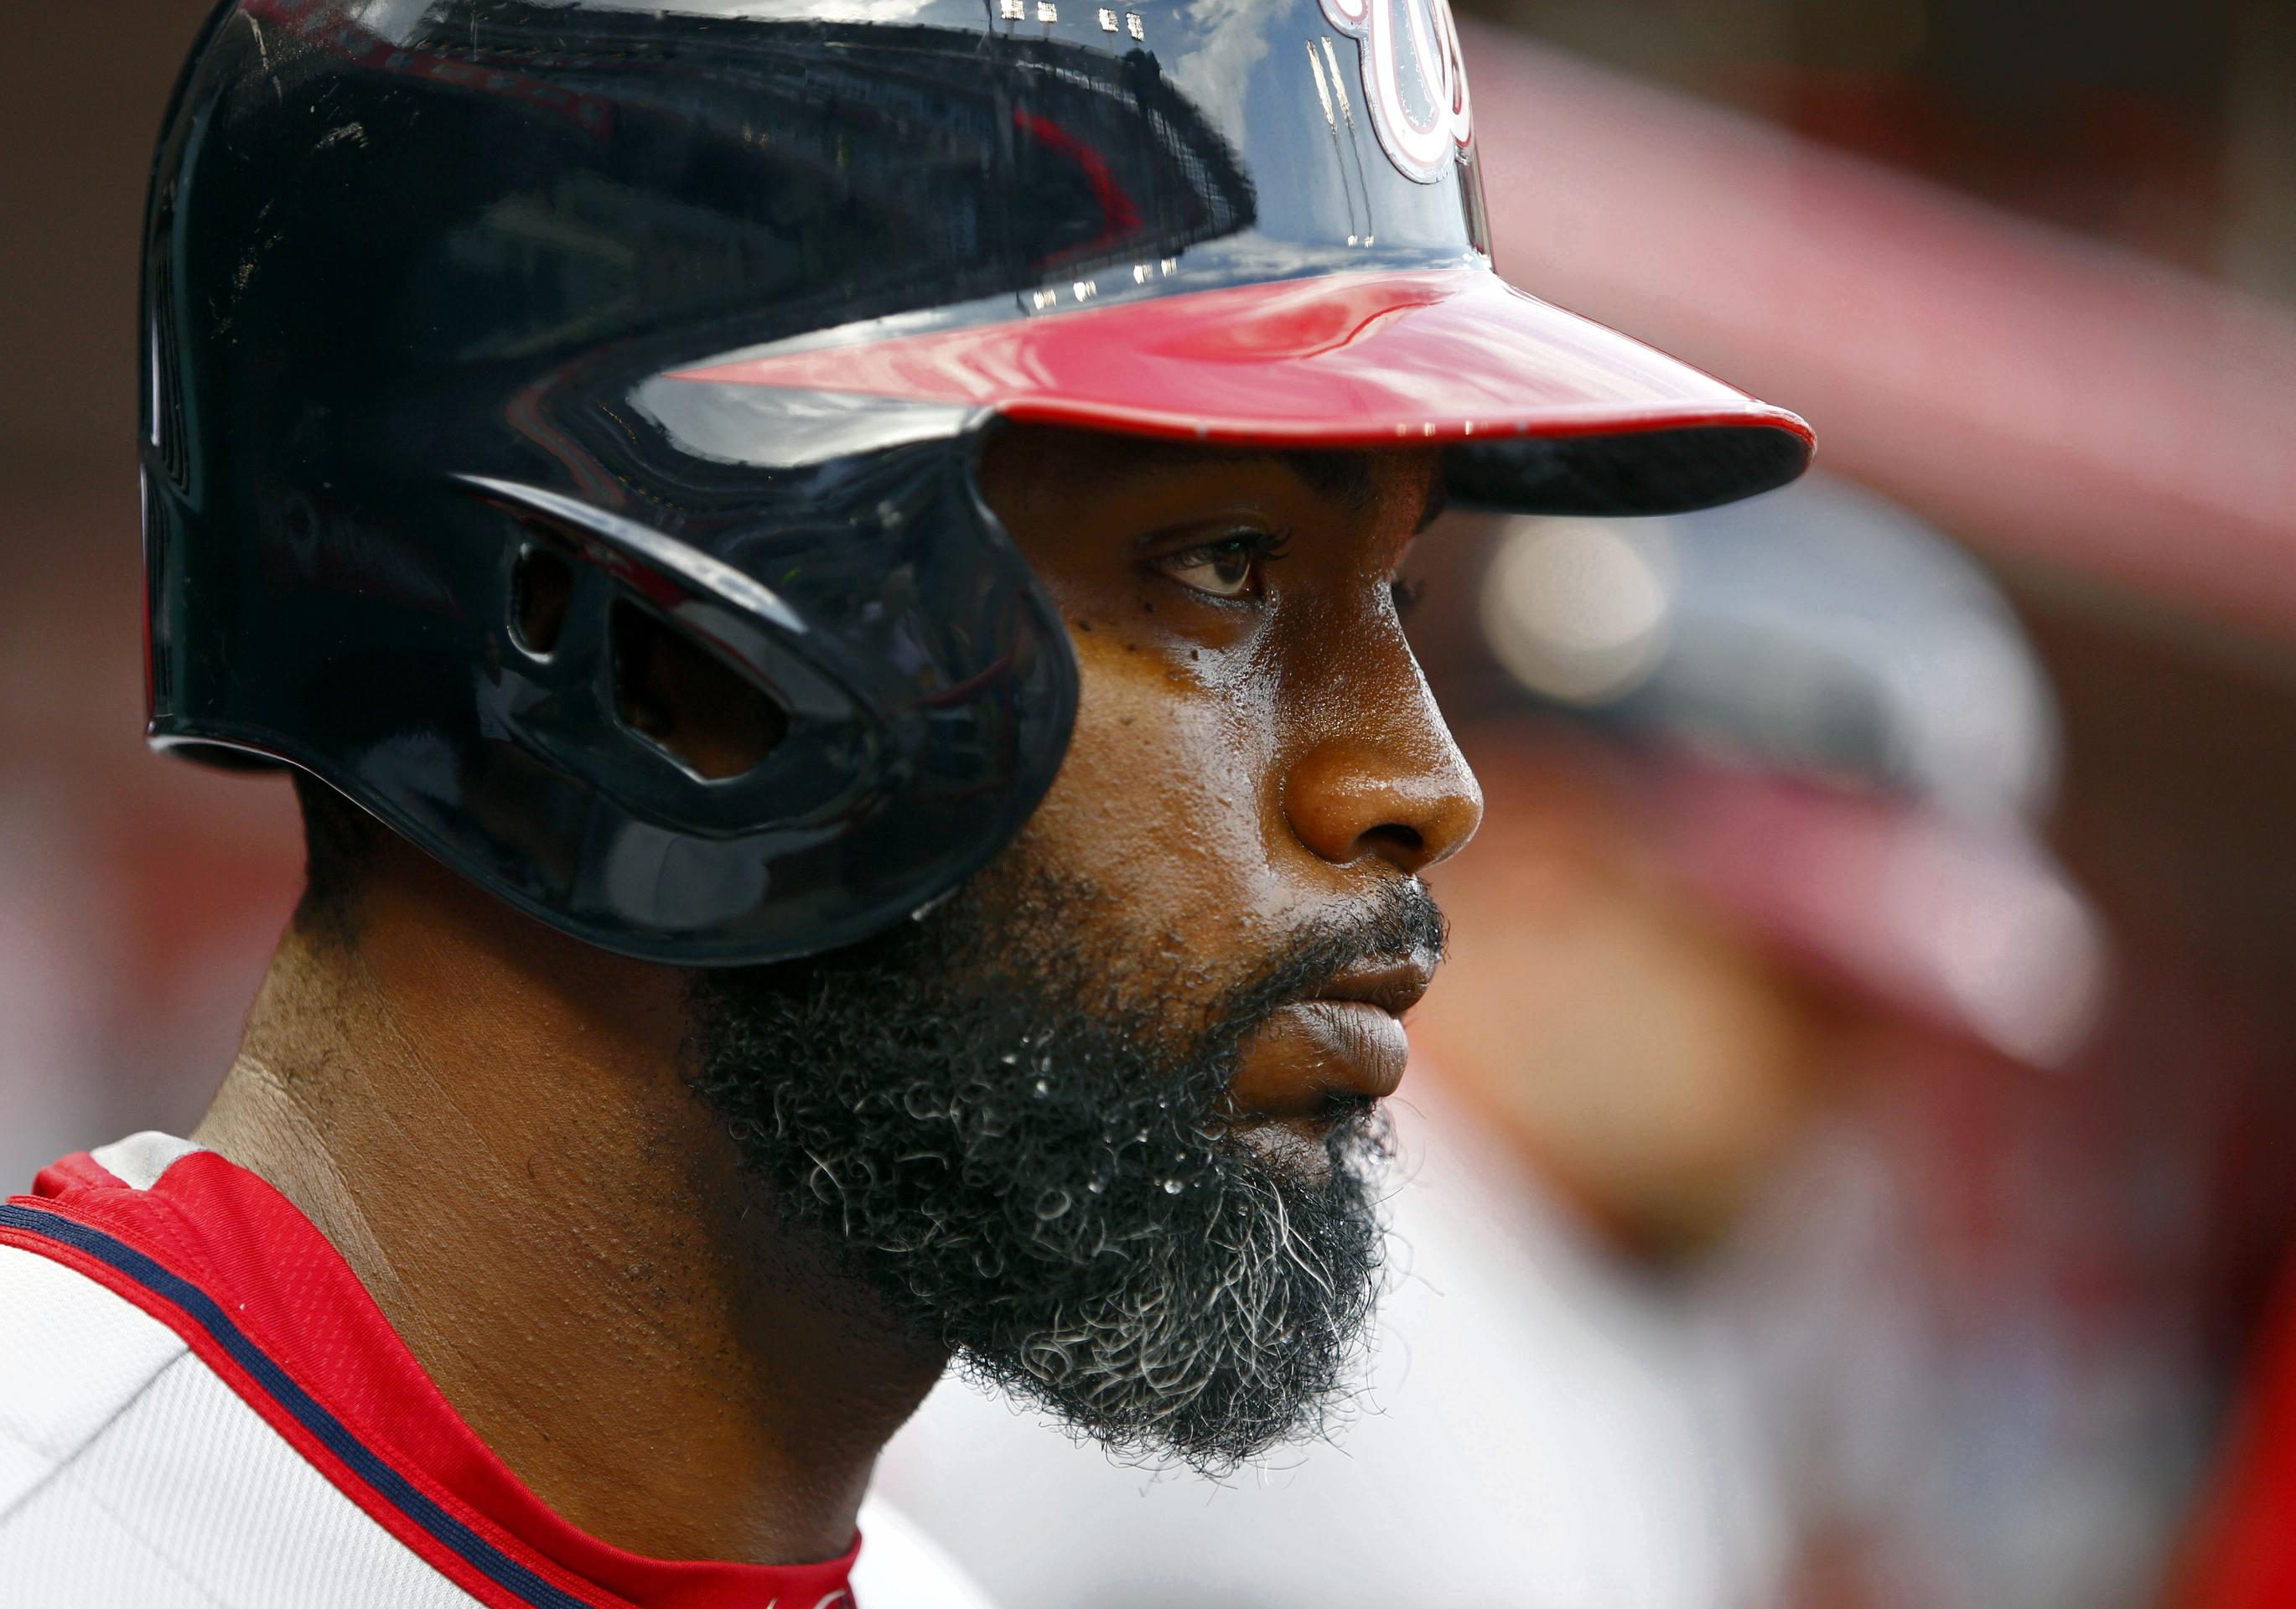 Span likely out for season after latest injury